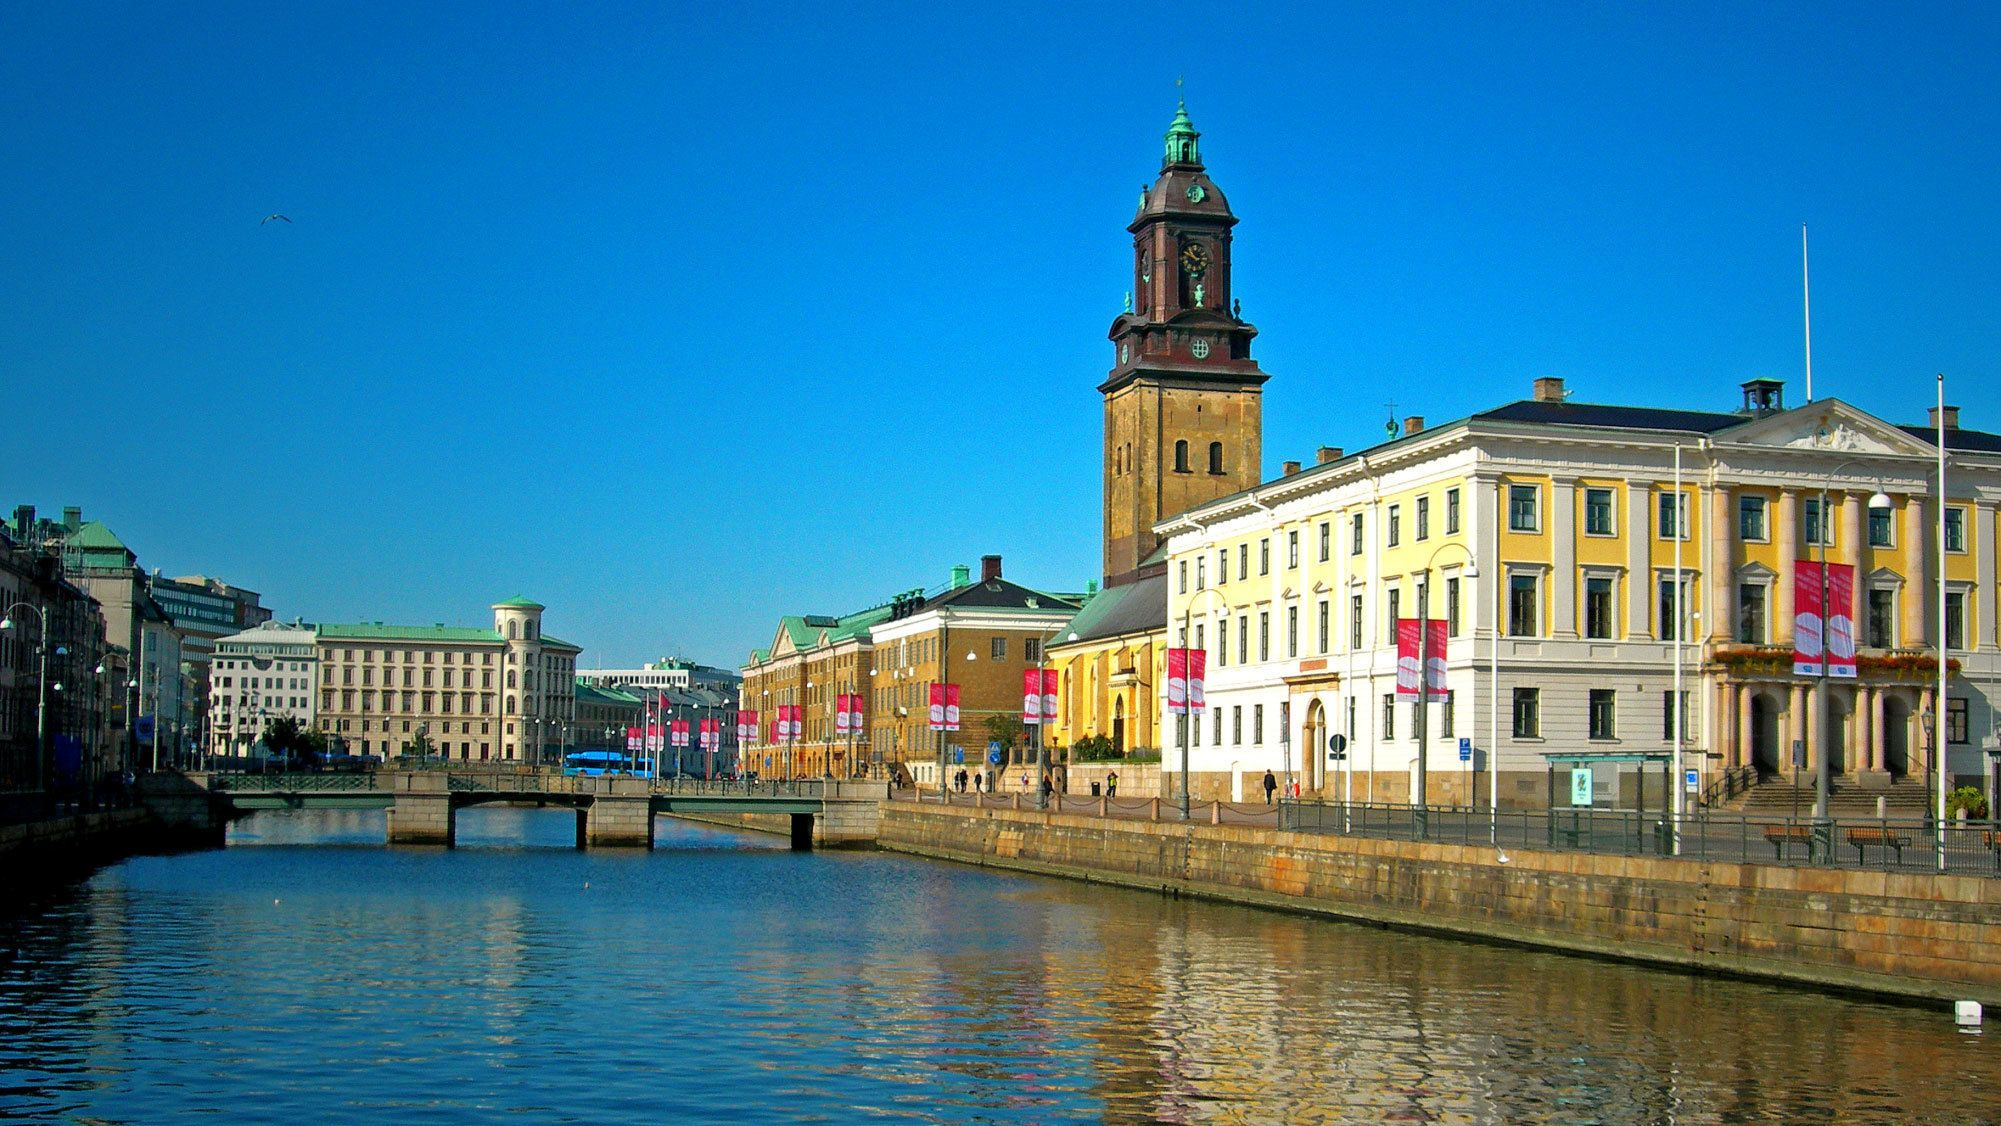 Canal and surrounding buildings in Gothenburg